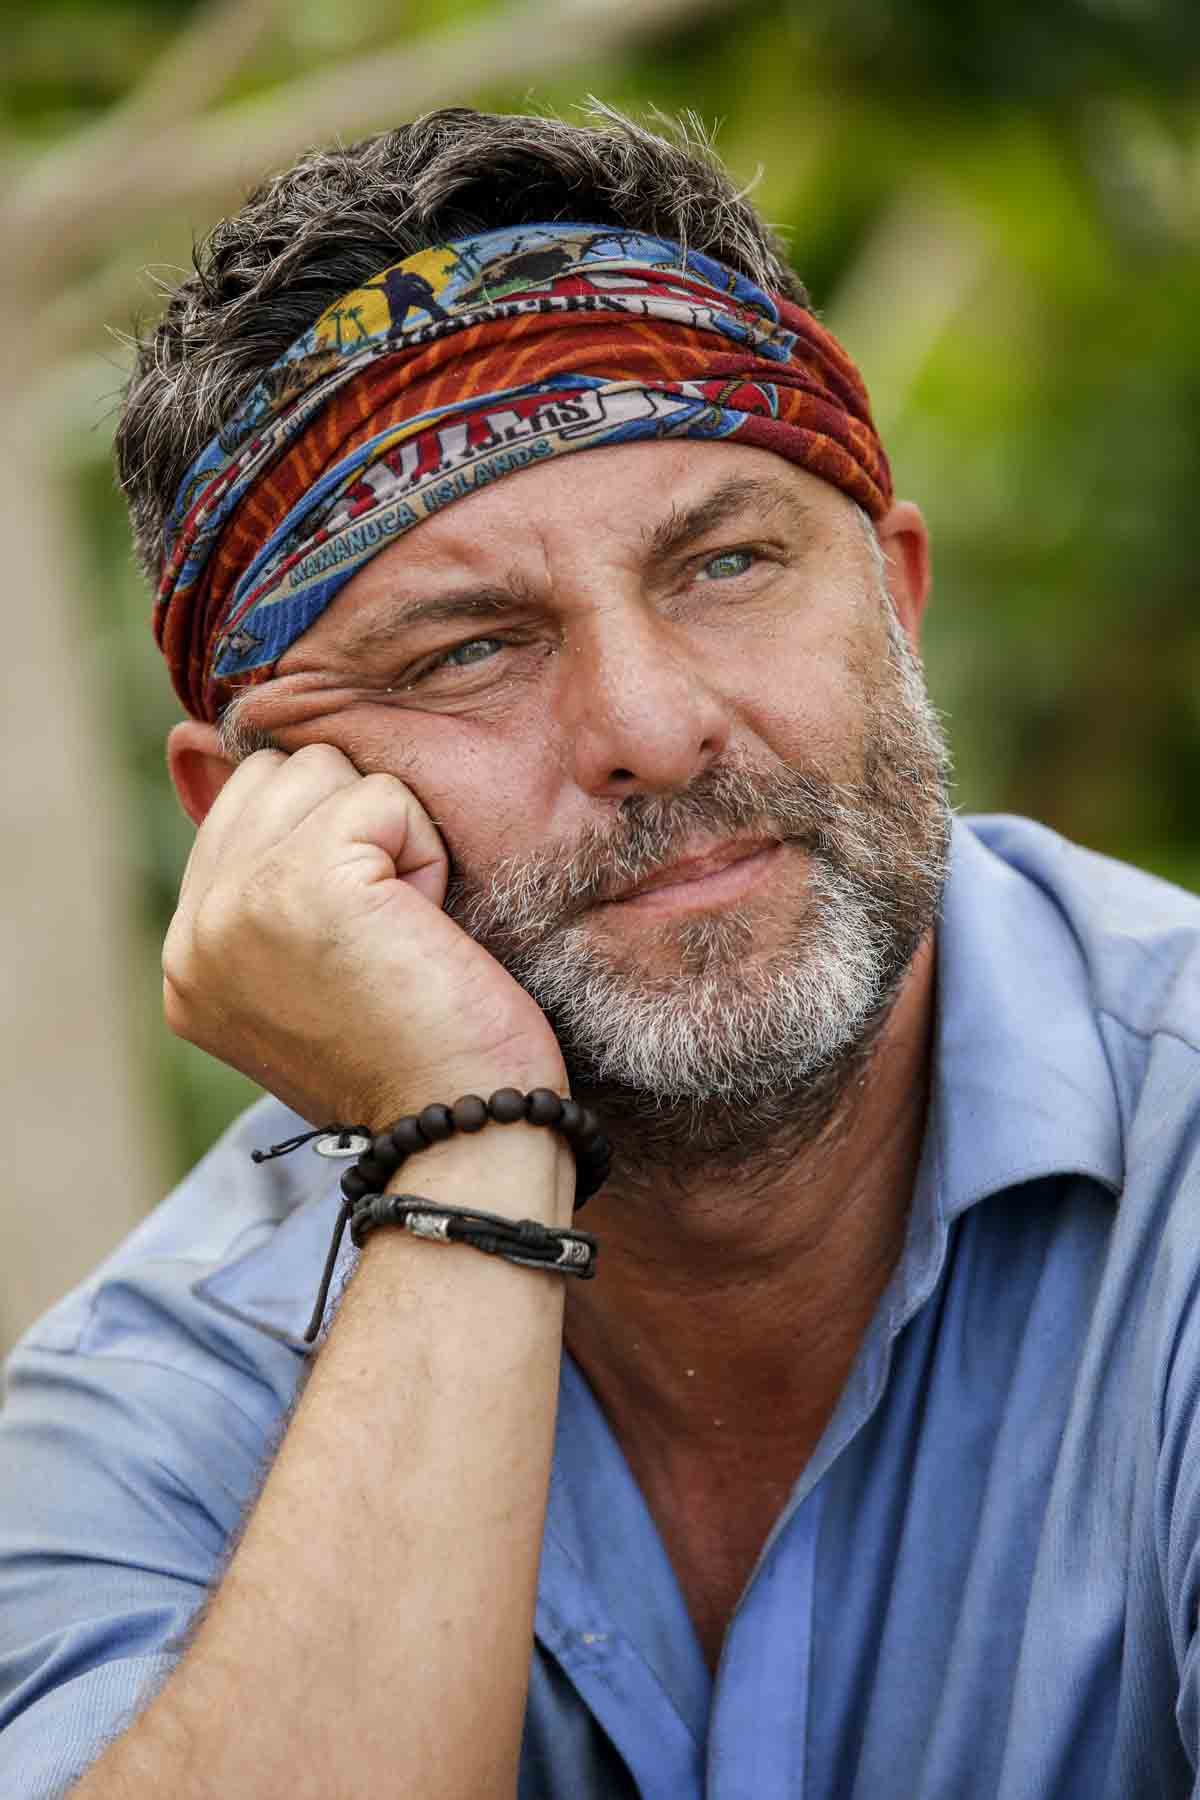 Jeff Varner apologized for his behavior but was booted off the show